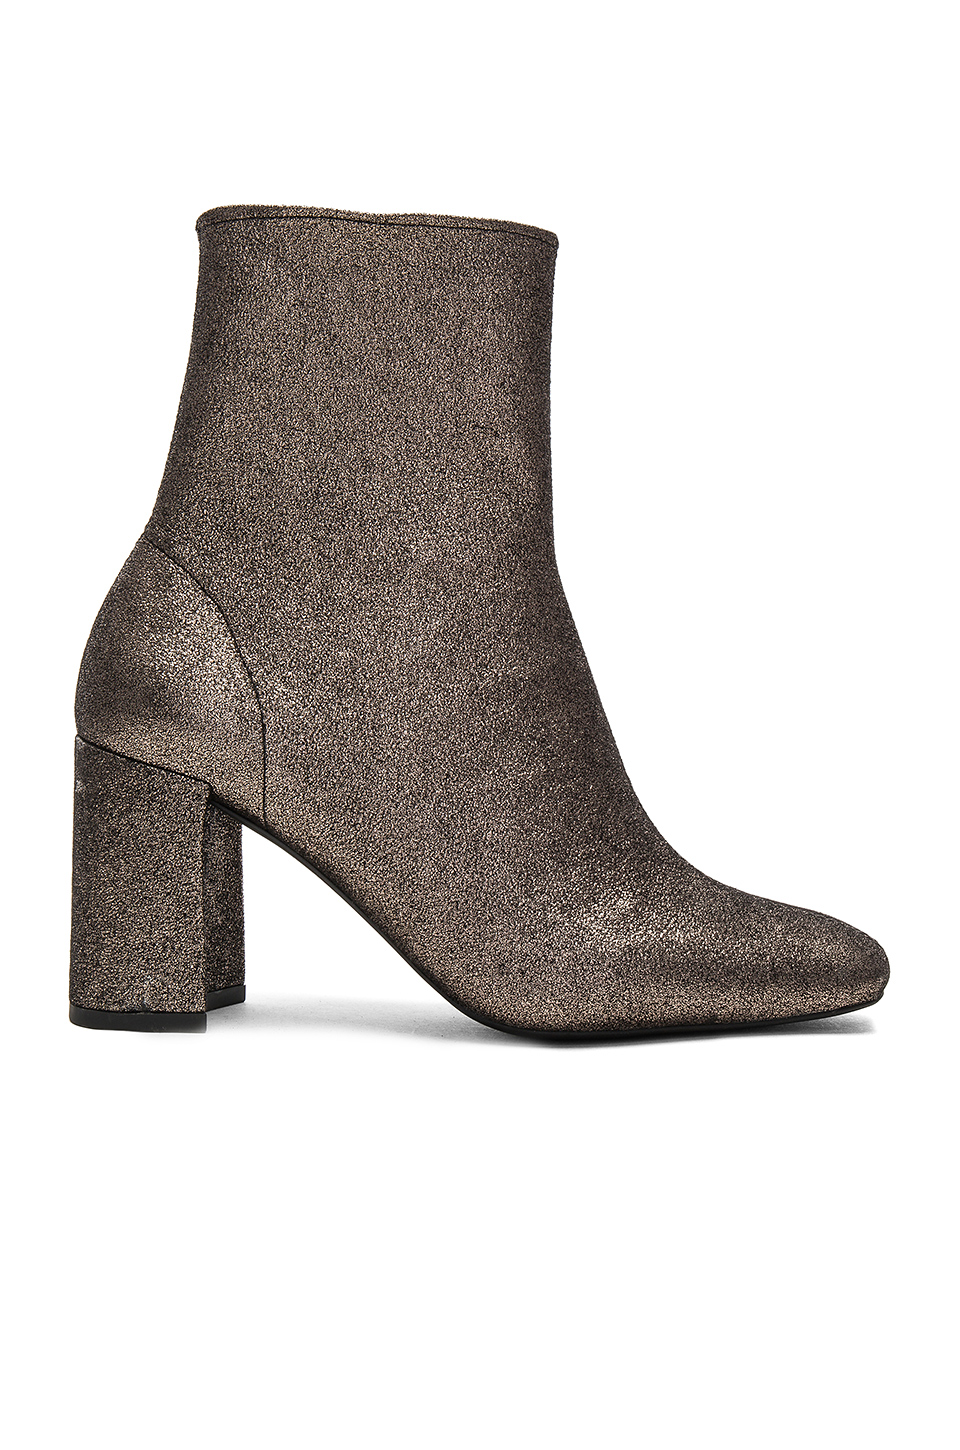 Jeffrey Campbell Cienega Lo Booties in Pewter Glitter Strech